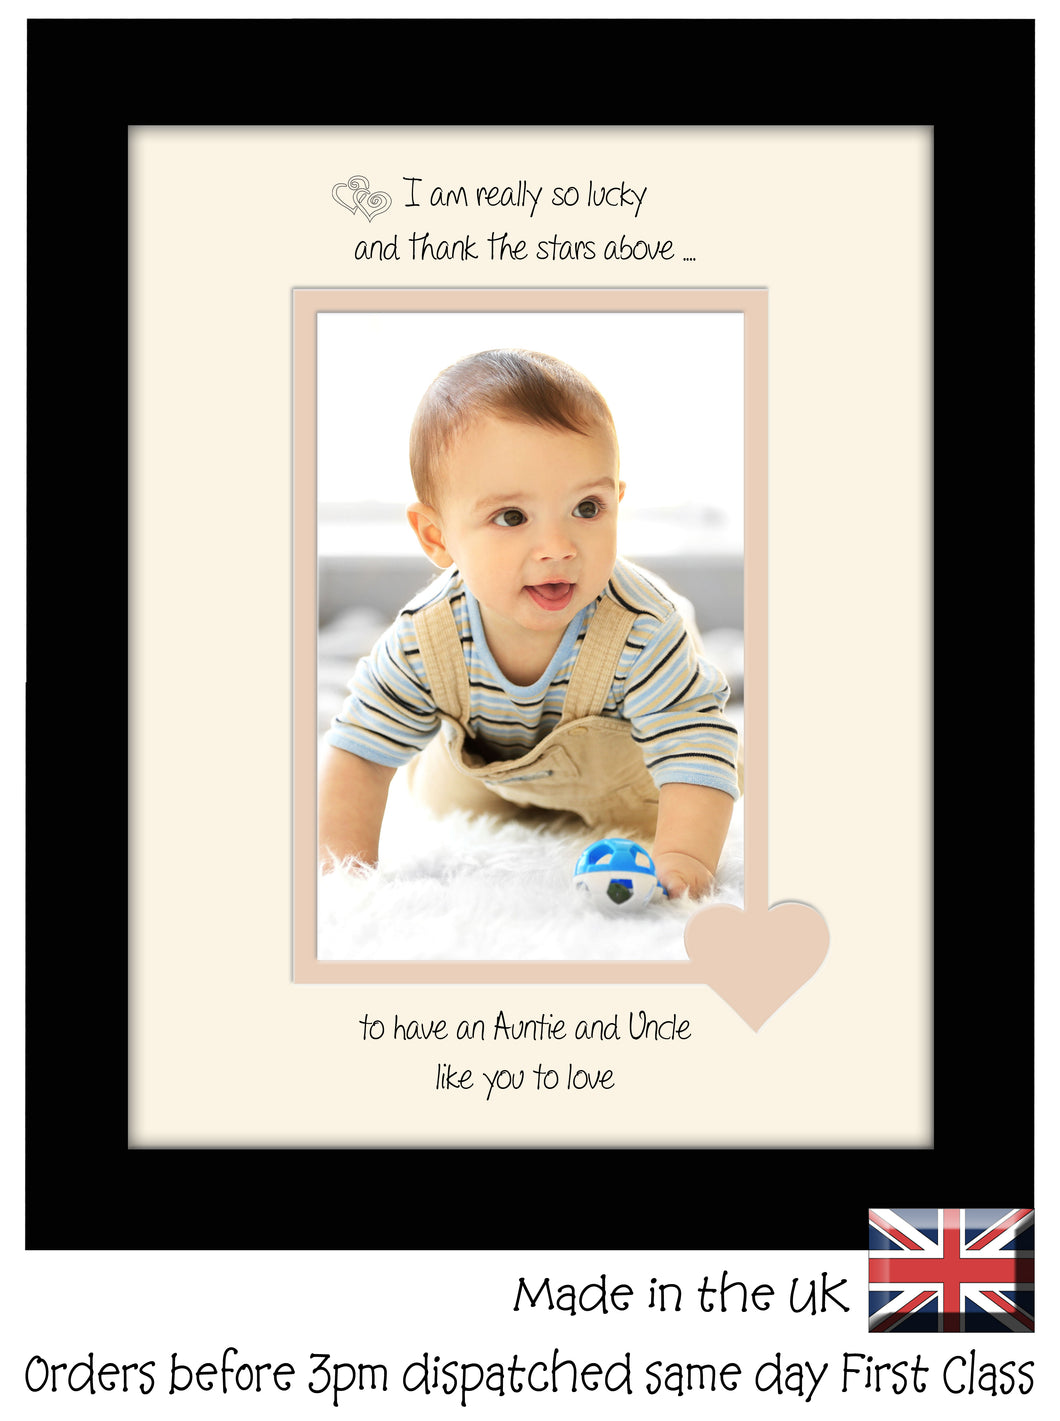 Auntie & Uncle Photo Frame - I Thank the stars Auntie & Uncle Portrait photo frame 6